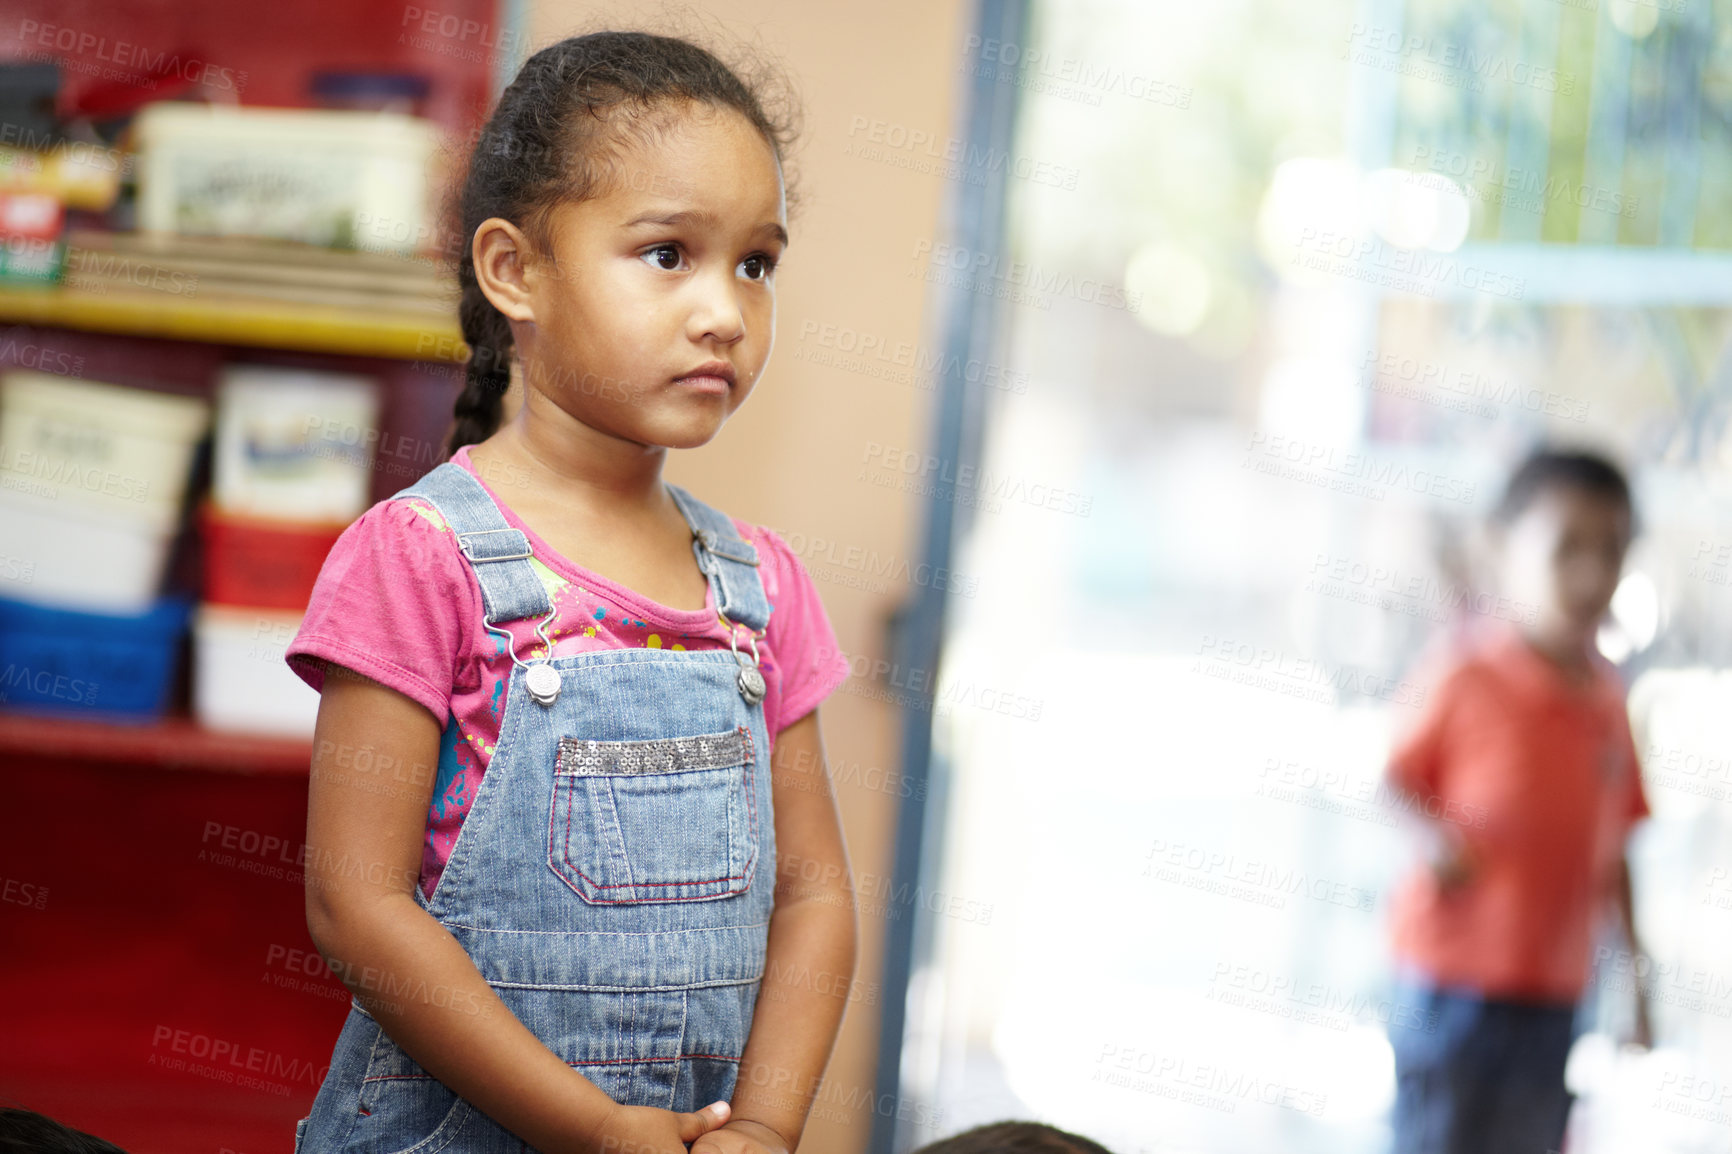 Buy stock photo A small cute pre-school girl looking at something off camera and seems to be lost in thought in her pre-school classroom